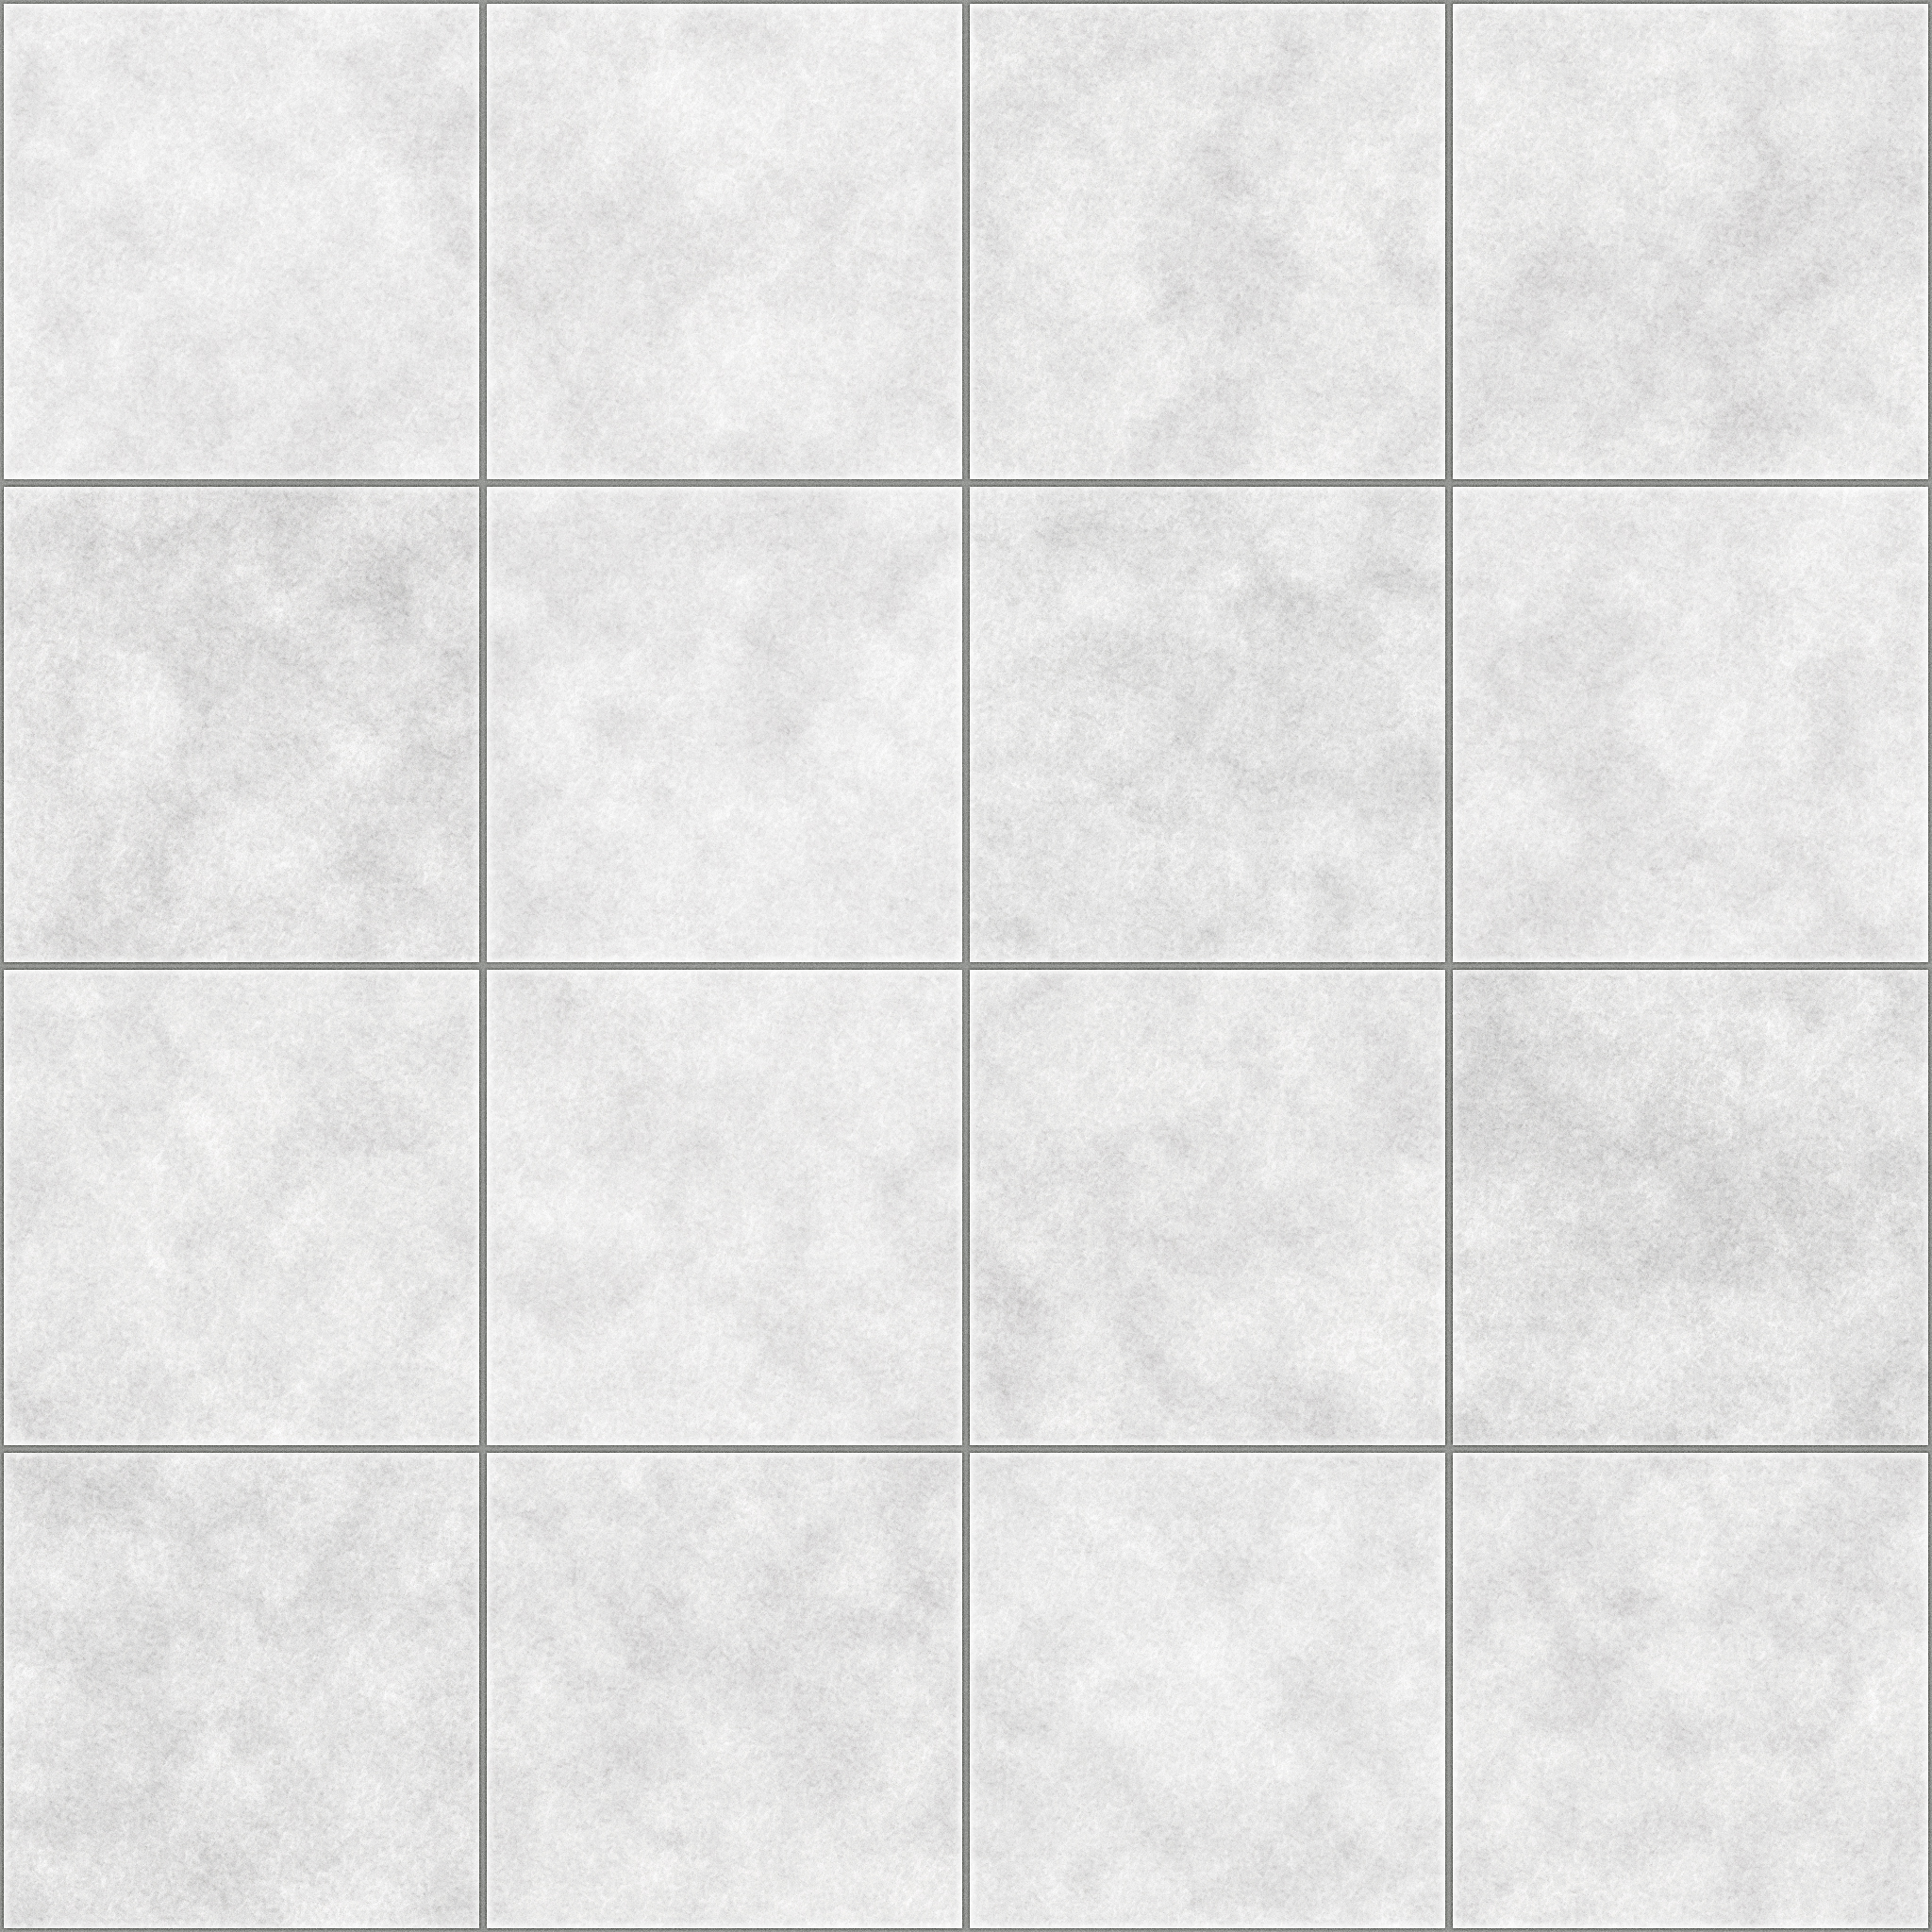 Marble Floor Tiles Texture Tileable 2048x2048 By